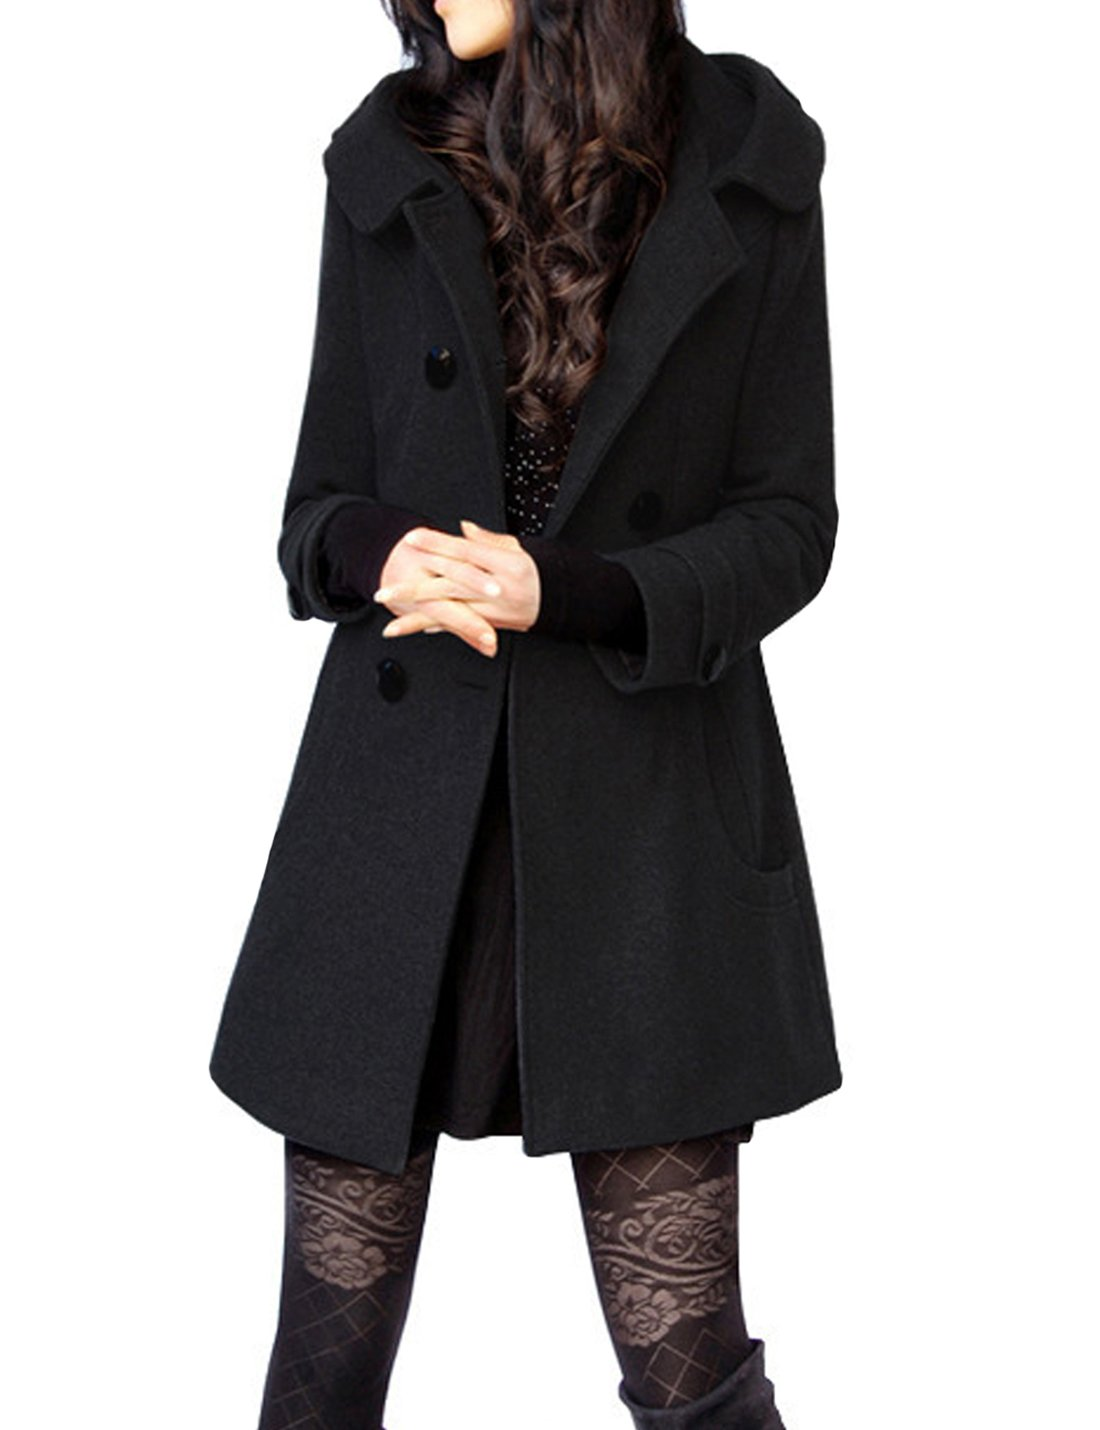 Tanming Women's Winter Double Breasted Wool Blend Long Pea Coat with Hood (Large, Black Cotton)